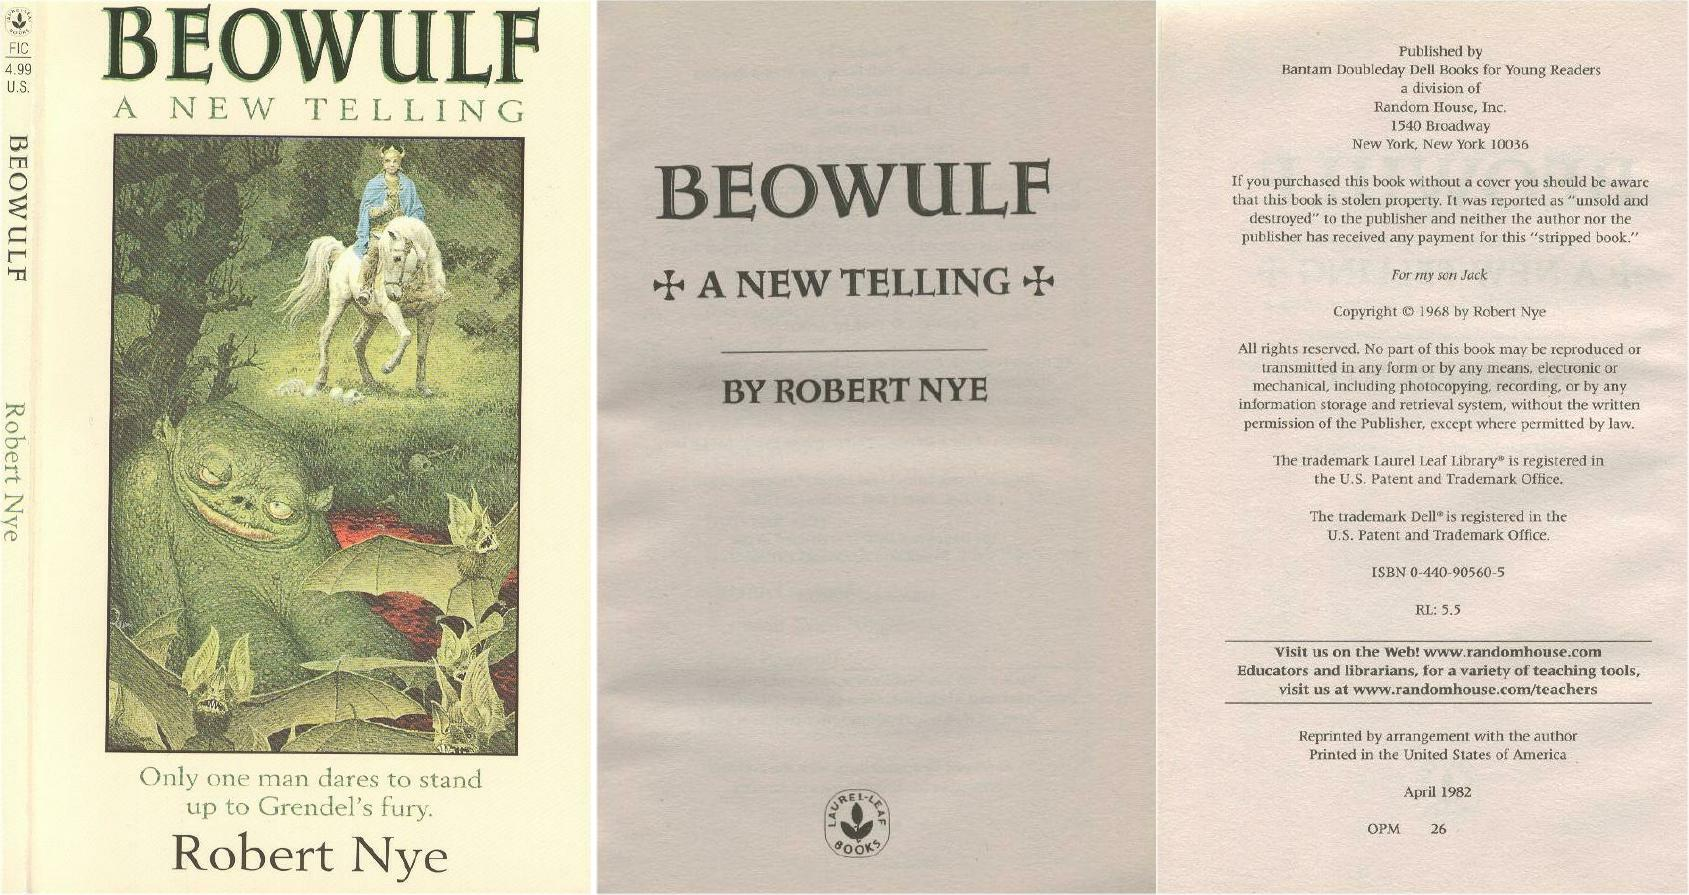 irony in beowulf Essays, term papers, book reports, research papers on literature: beowulf free papers and essays on beowulf and irony we provide free model essays on literature: beowulf, beowulf and irony reports, and term paper samples related to beowulf and irony.